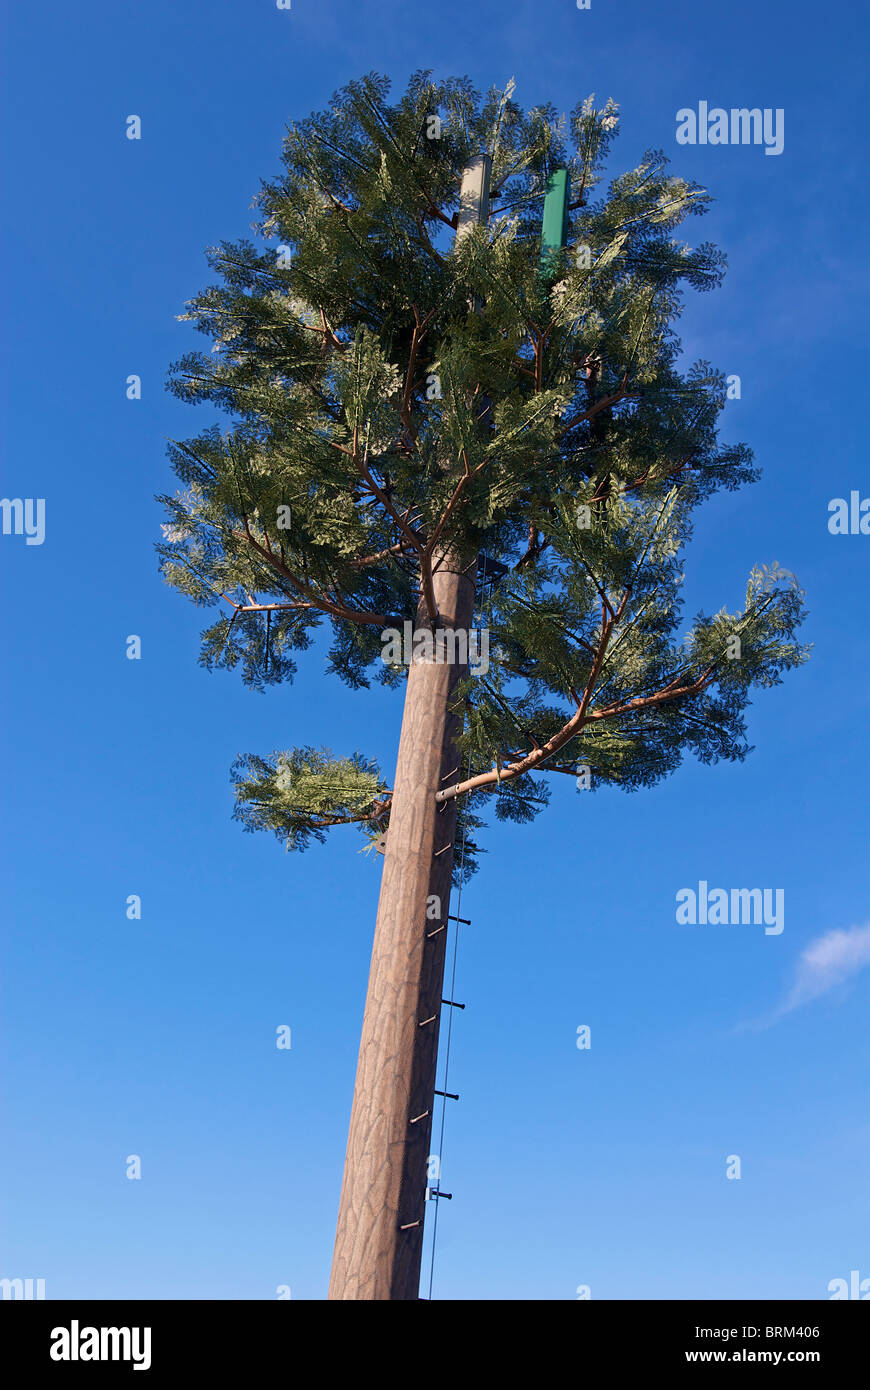 Mobile telephone  mast disguised to look like a tree. - Stock Image